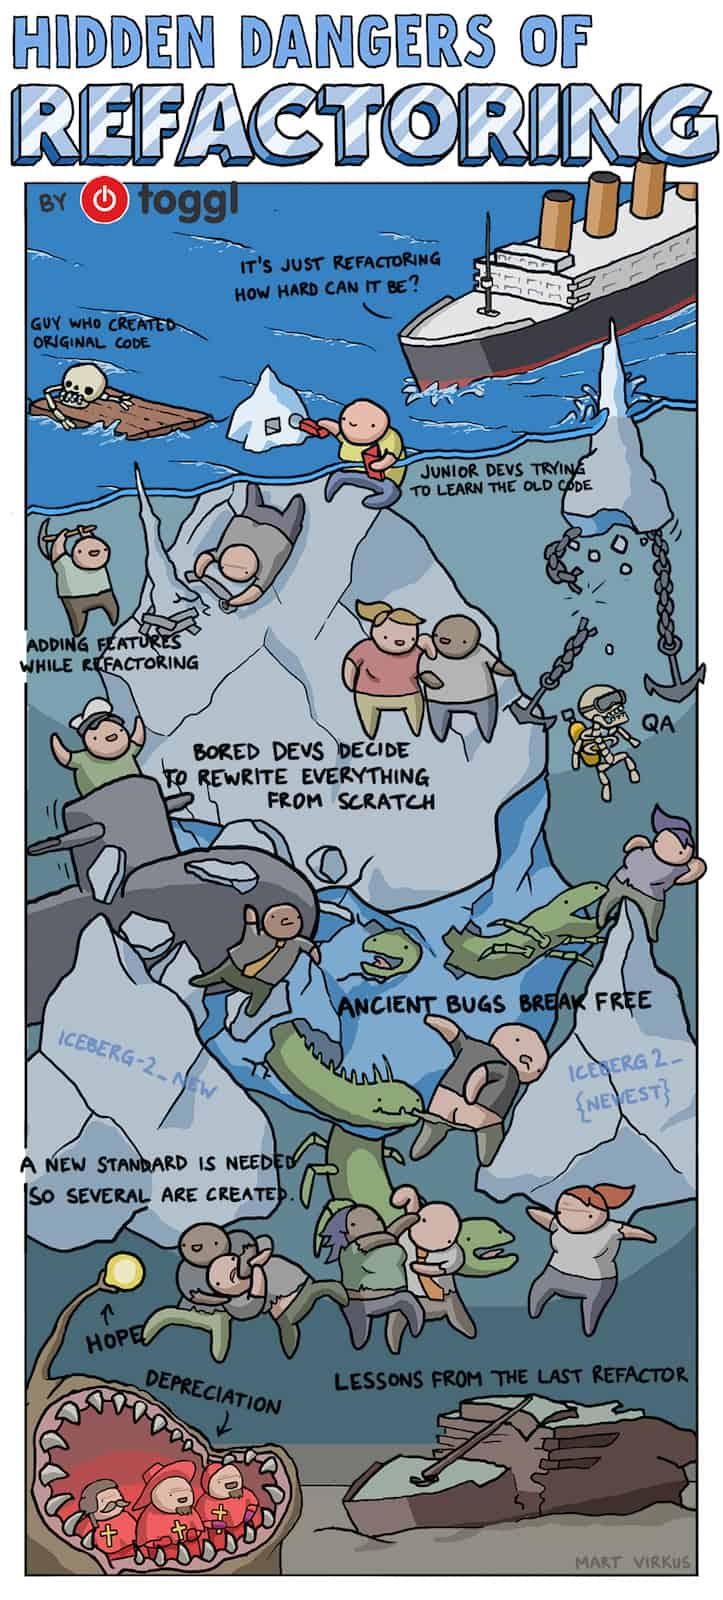 Single-panel comic about the hidden dangers of refactoring, featuring a cartoon illustration of a ship headed towards an iceberg